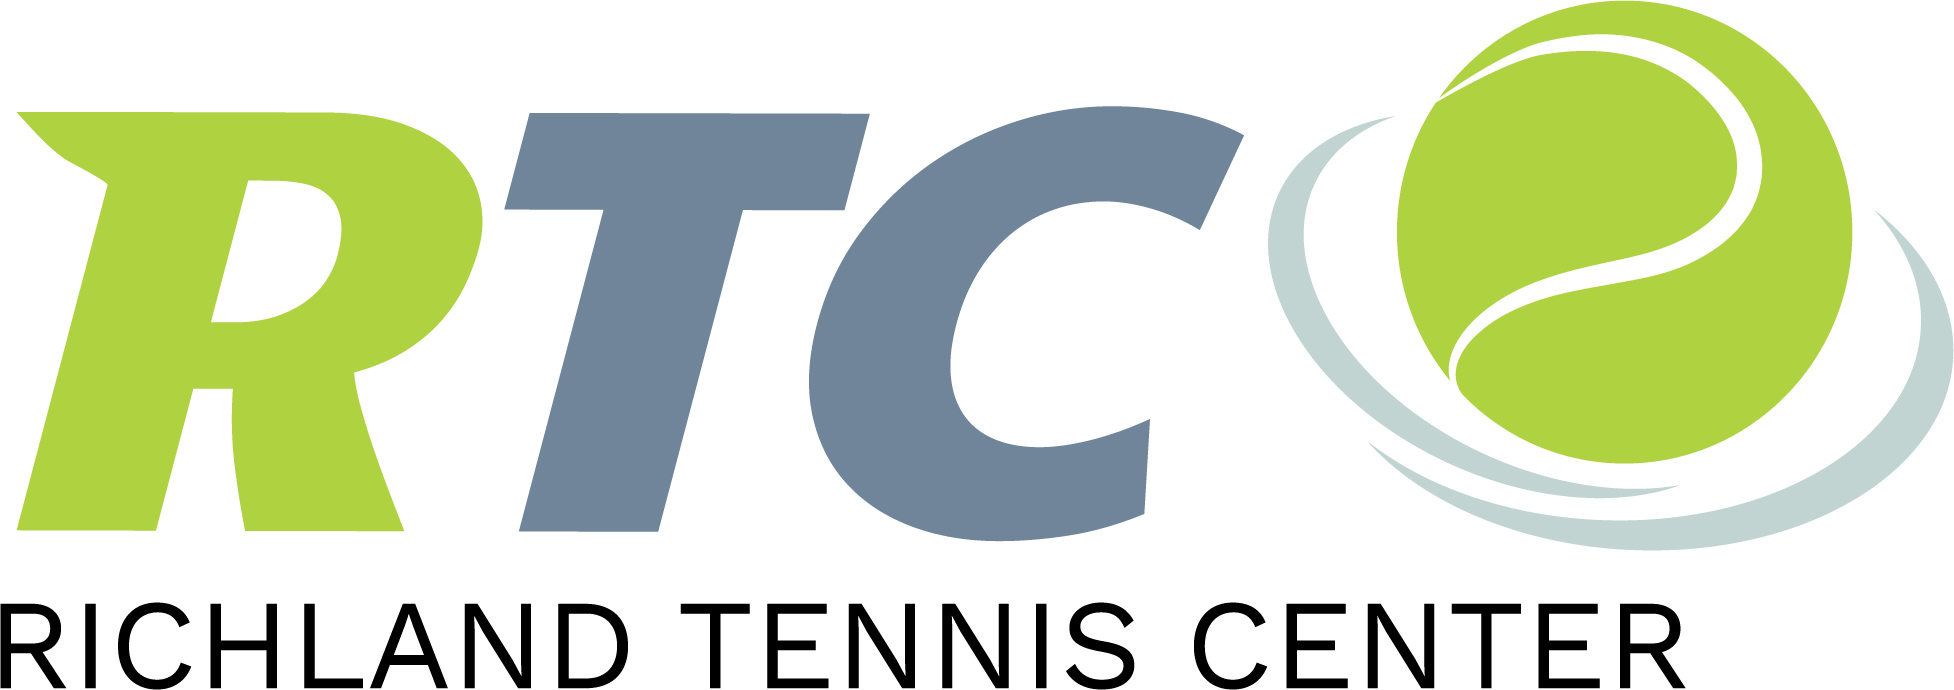 RTC FINAL LOGO COLOR.jpg